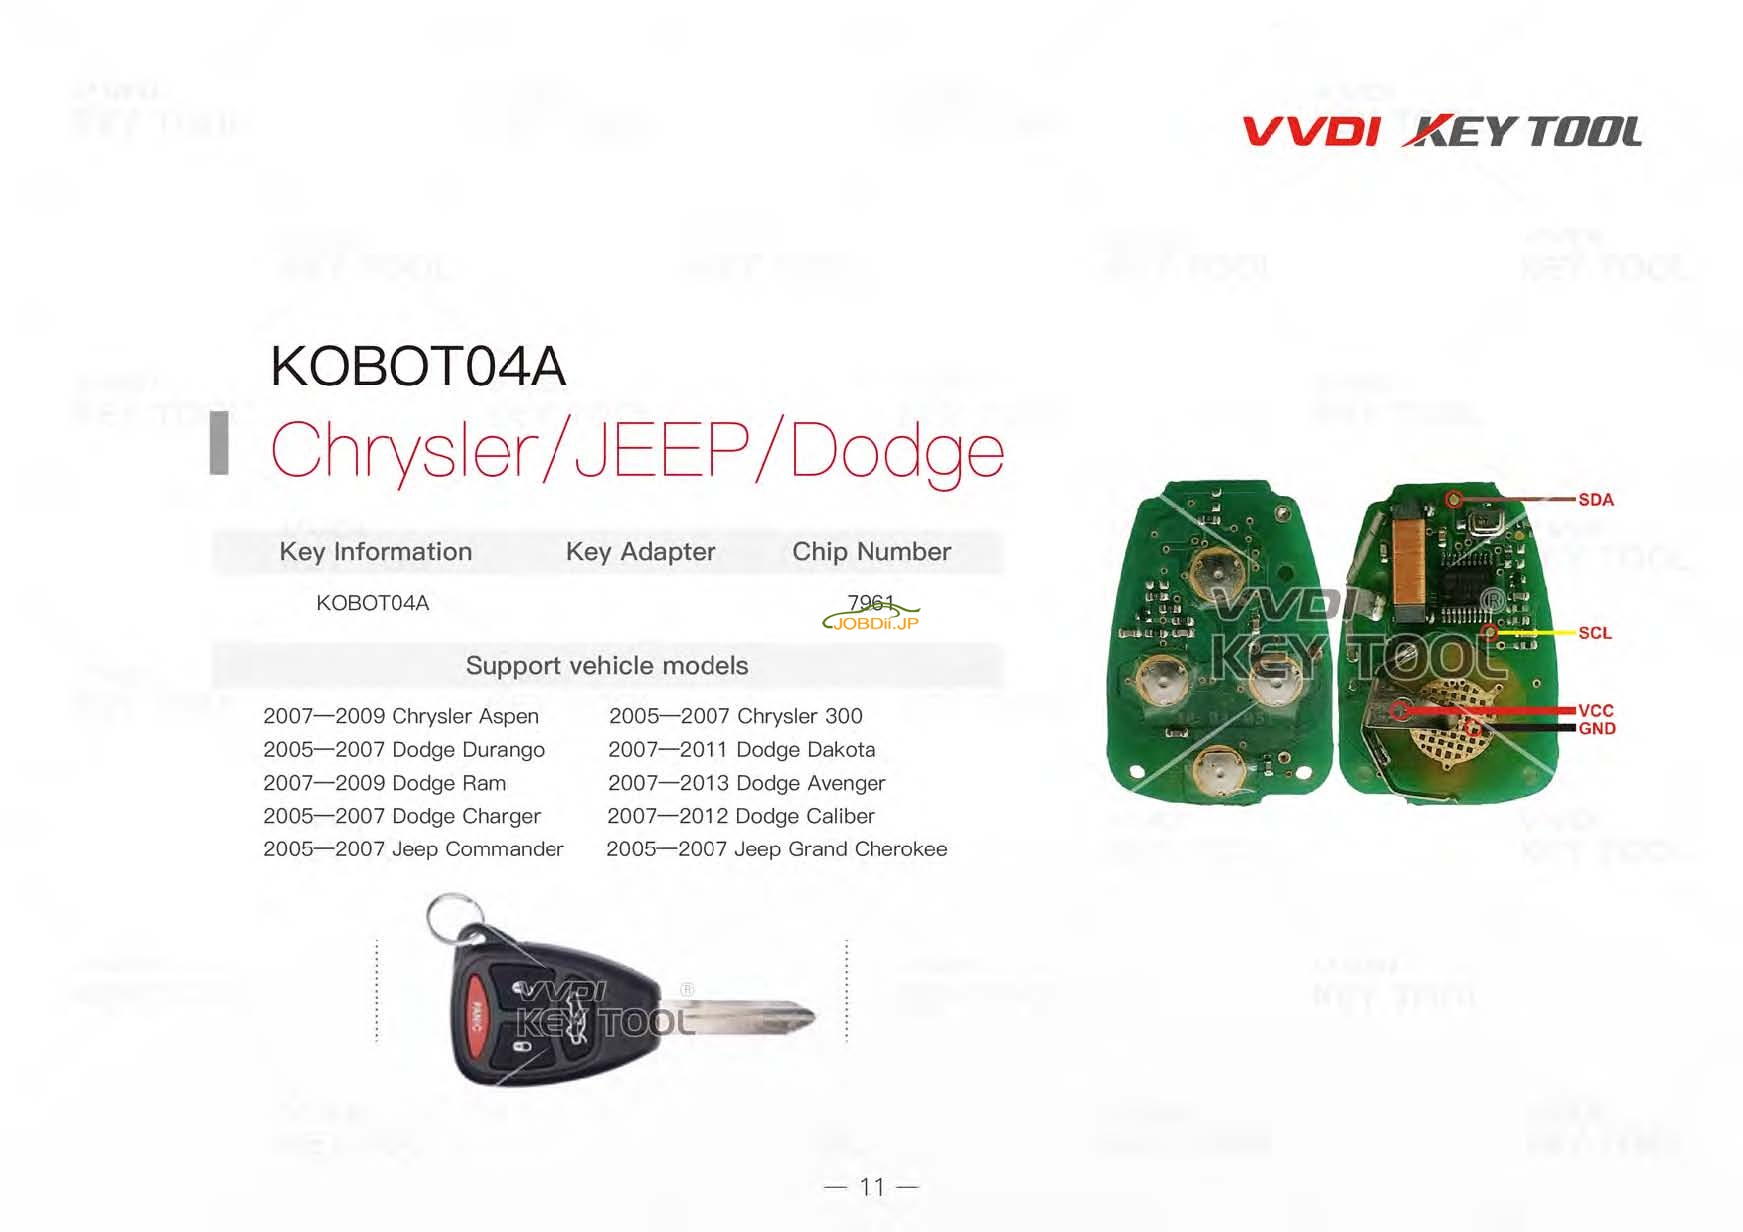 vvdi-key-tool-renew-diagram-11